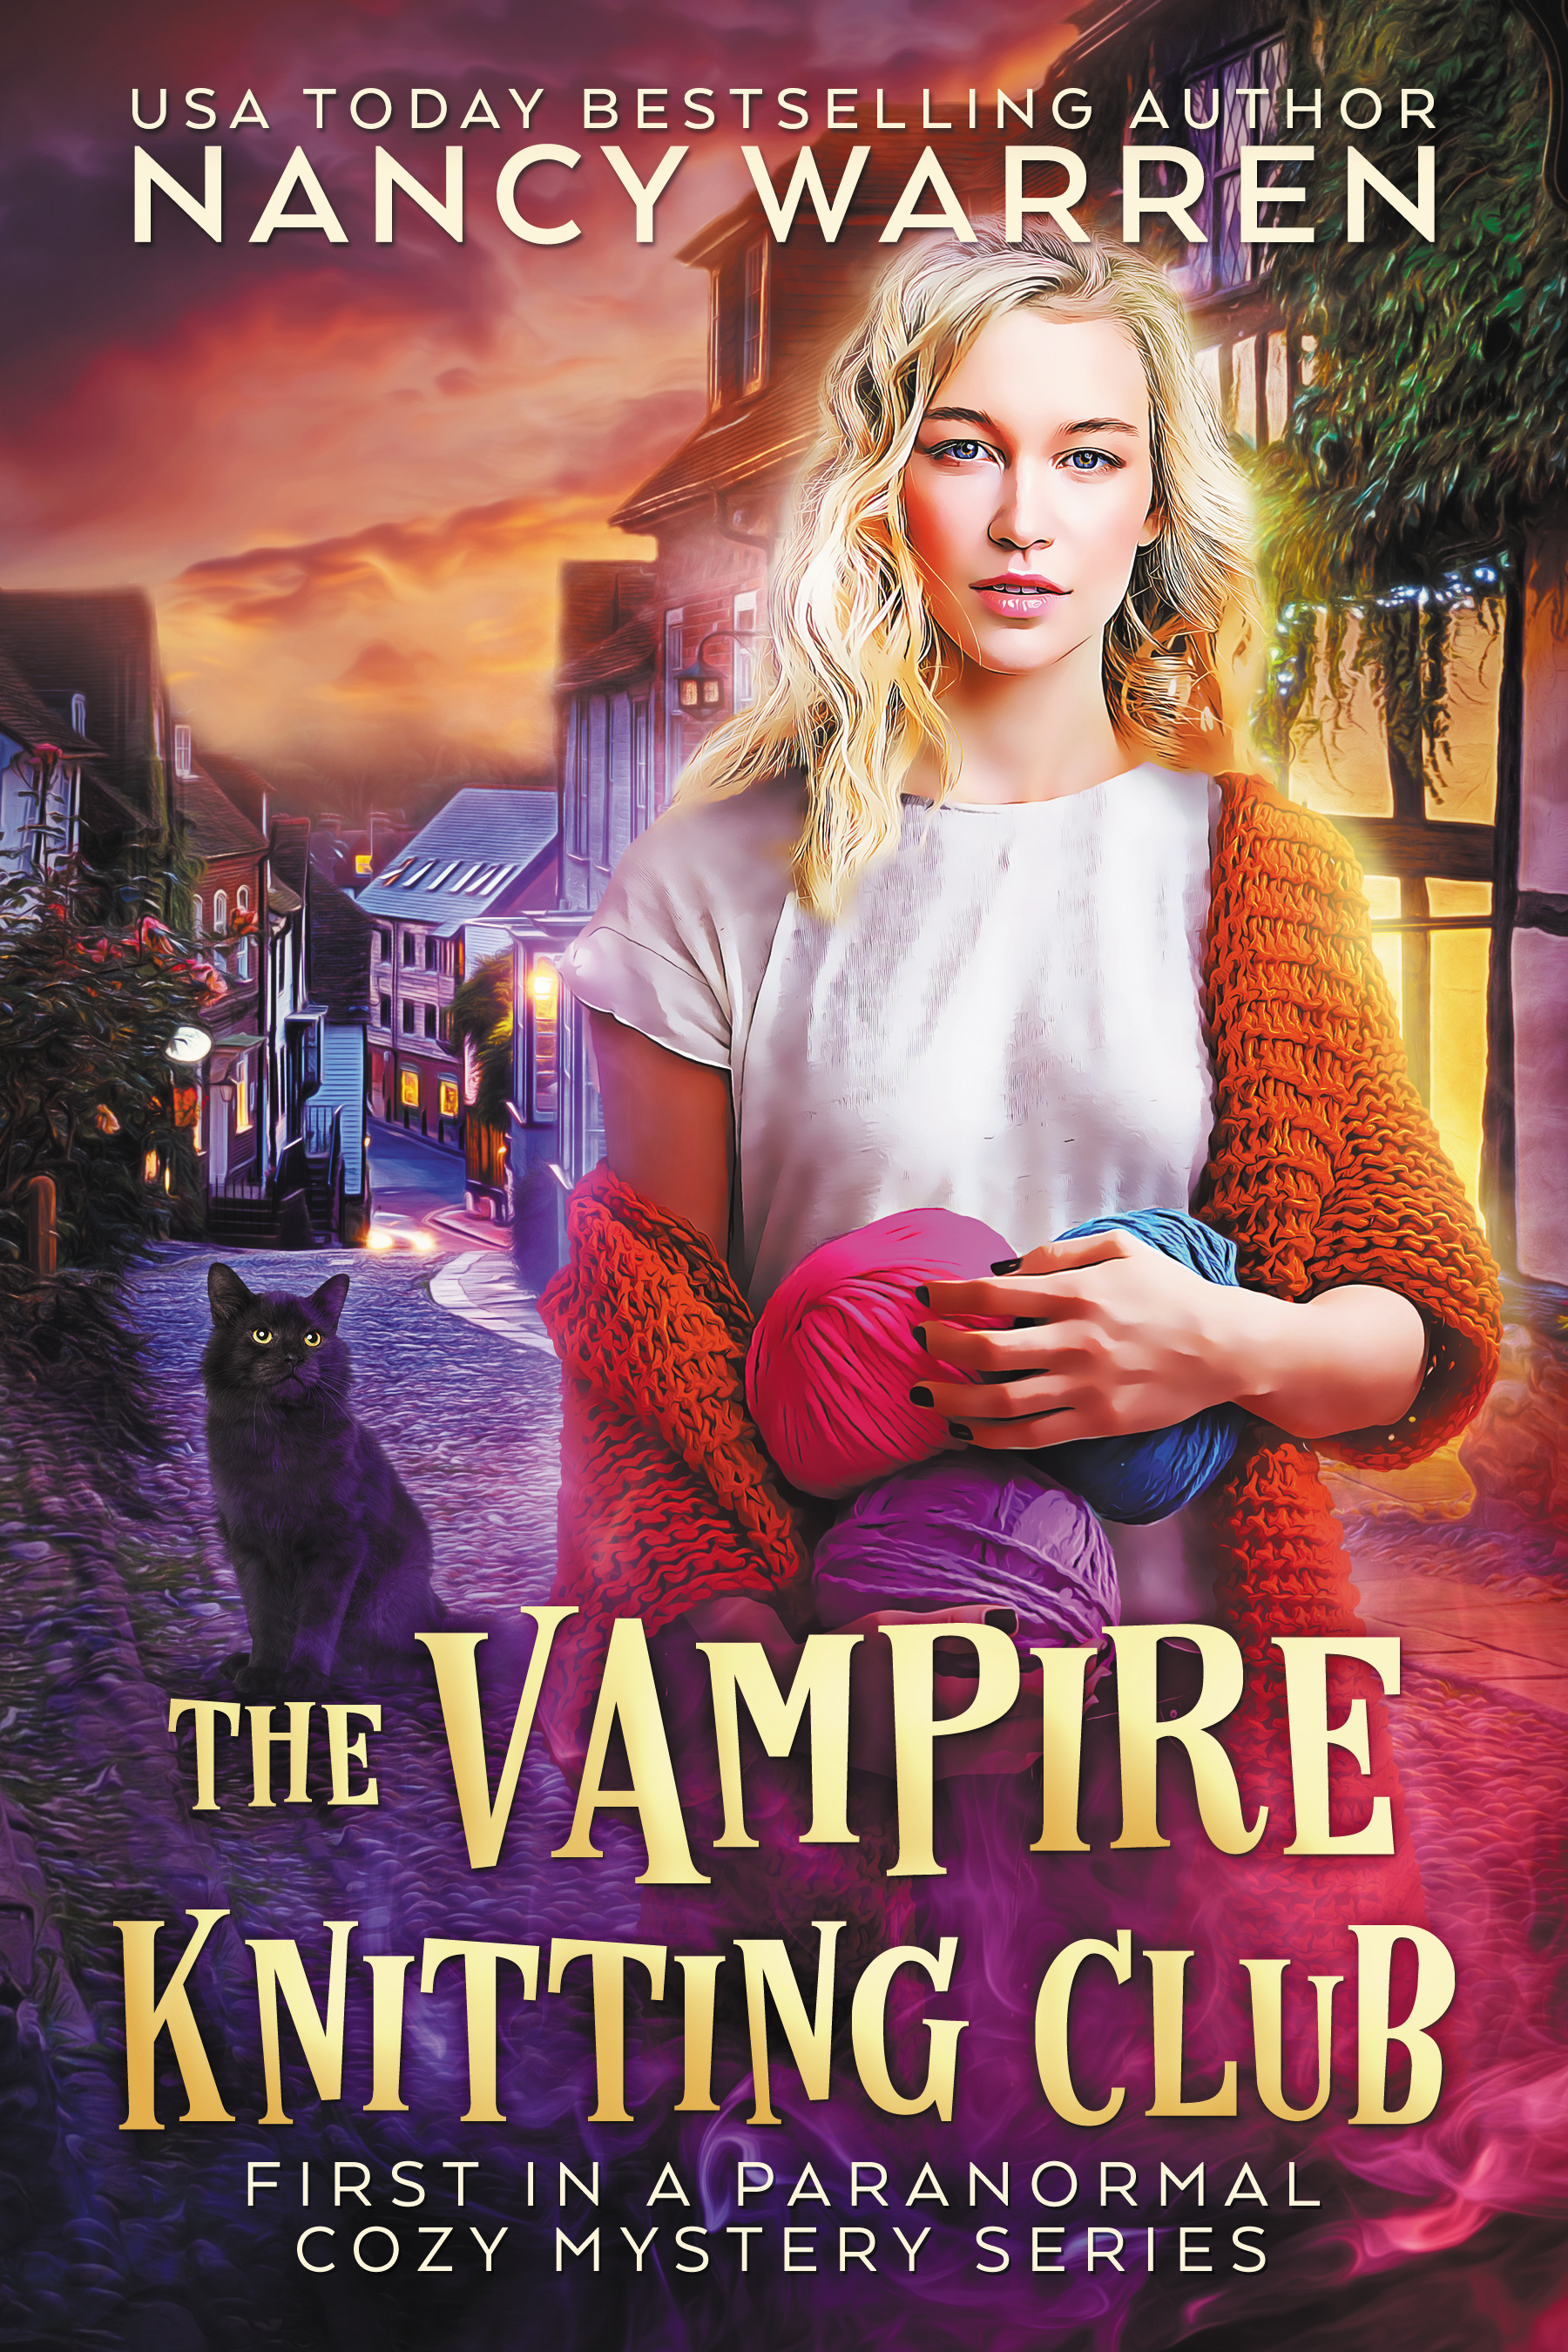 The Vampire Knitting Club by Nancy Warren